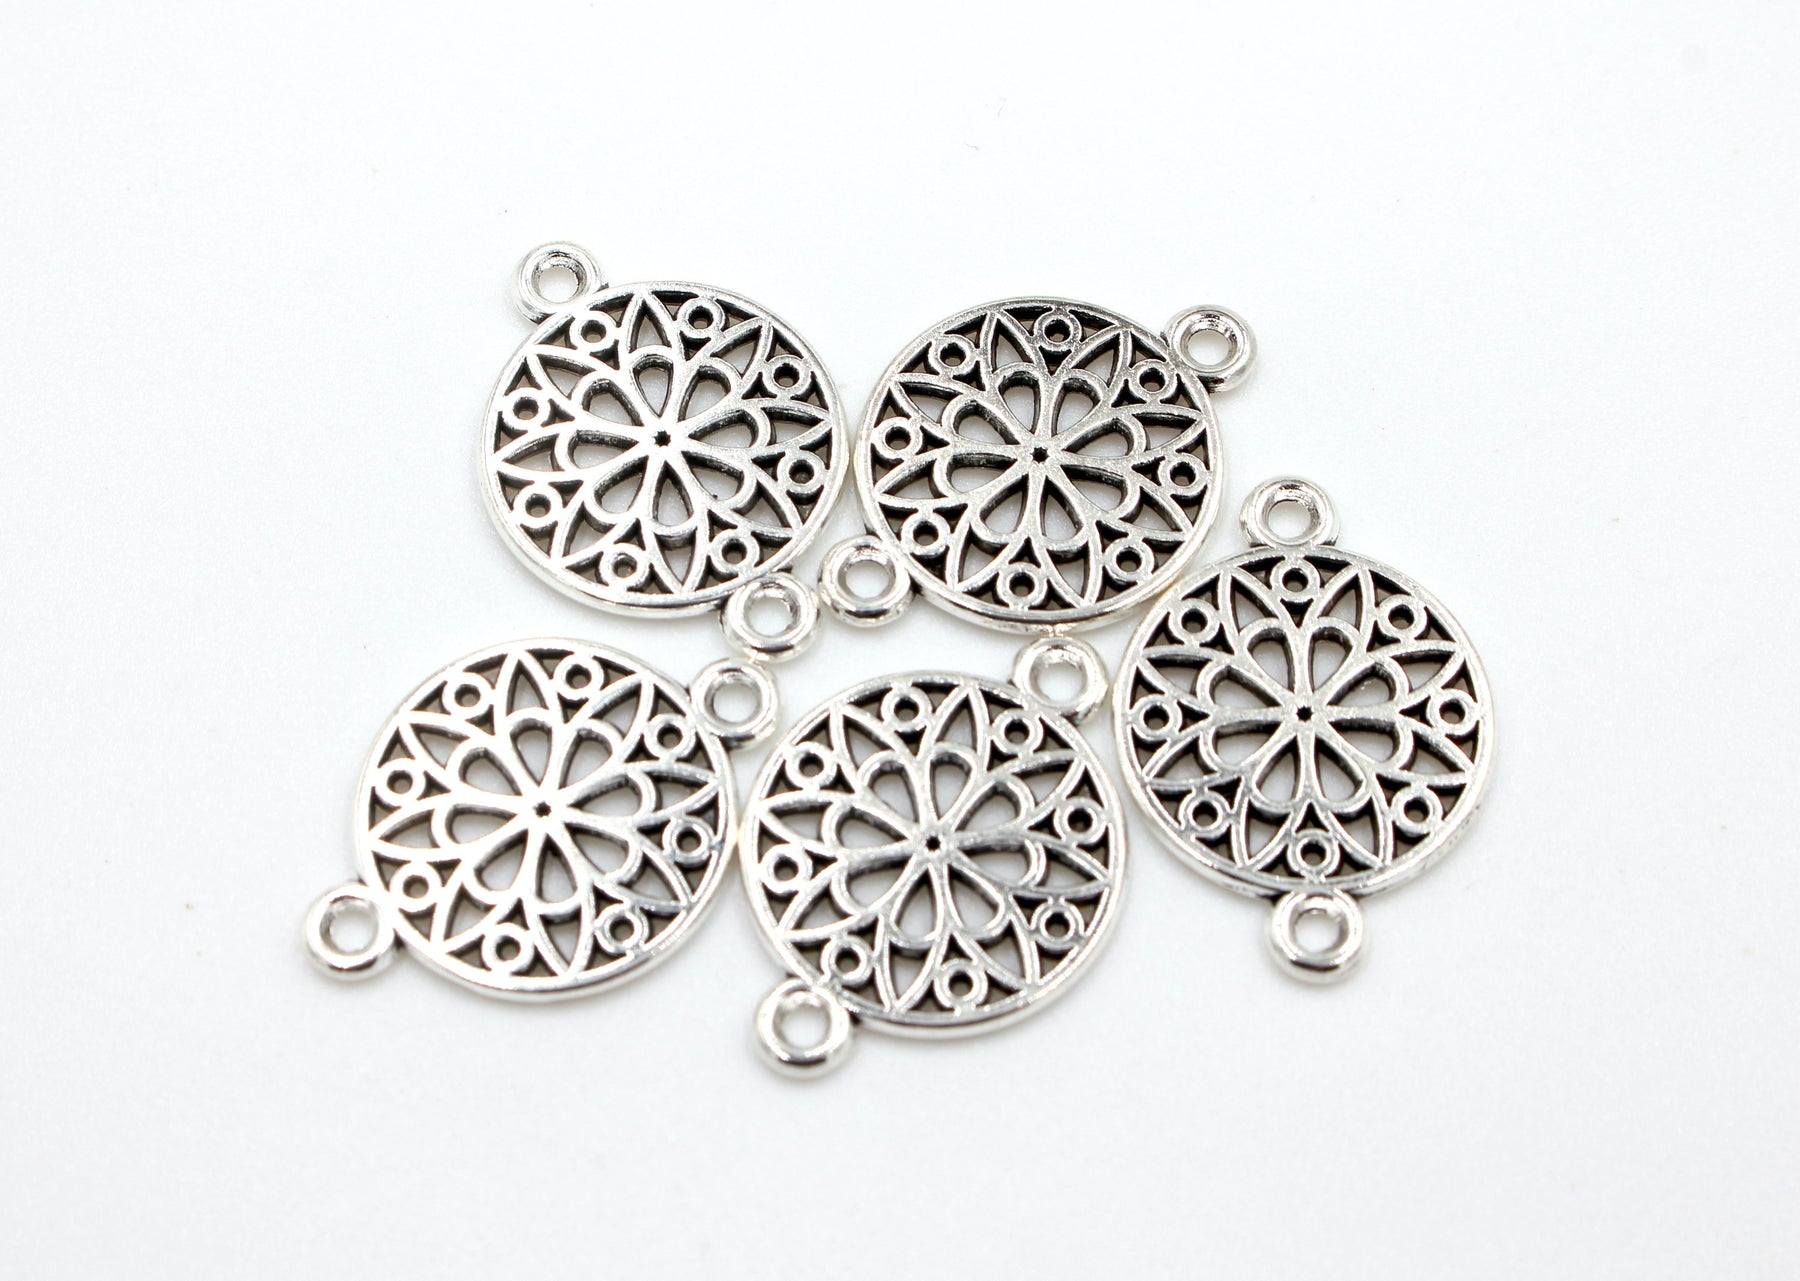 filigree connectors